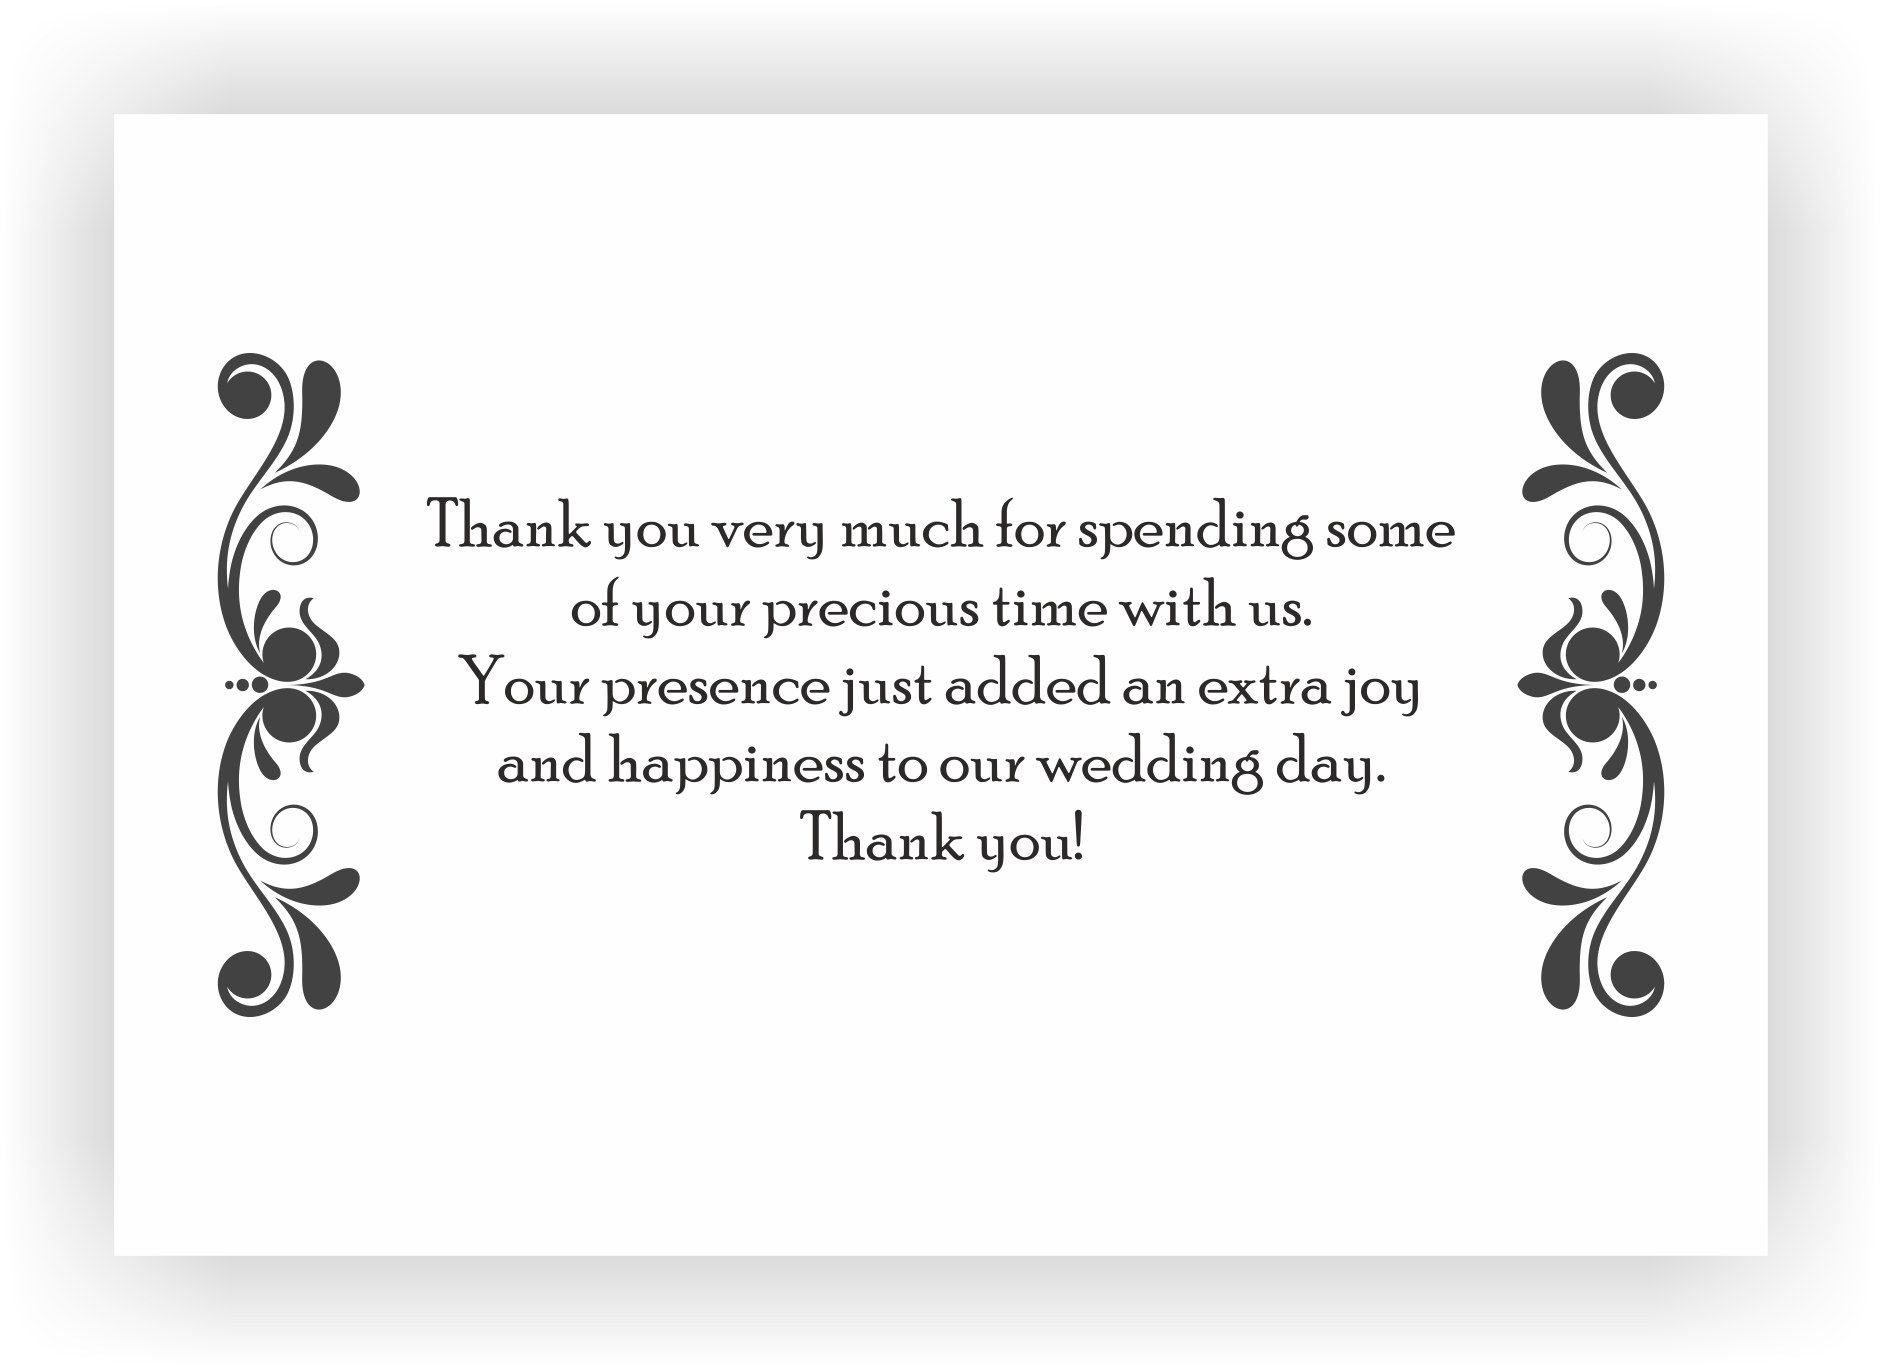 Thank You Message For Inviting Us To Your Wedding